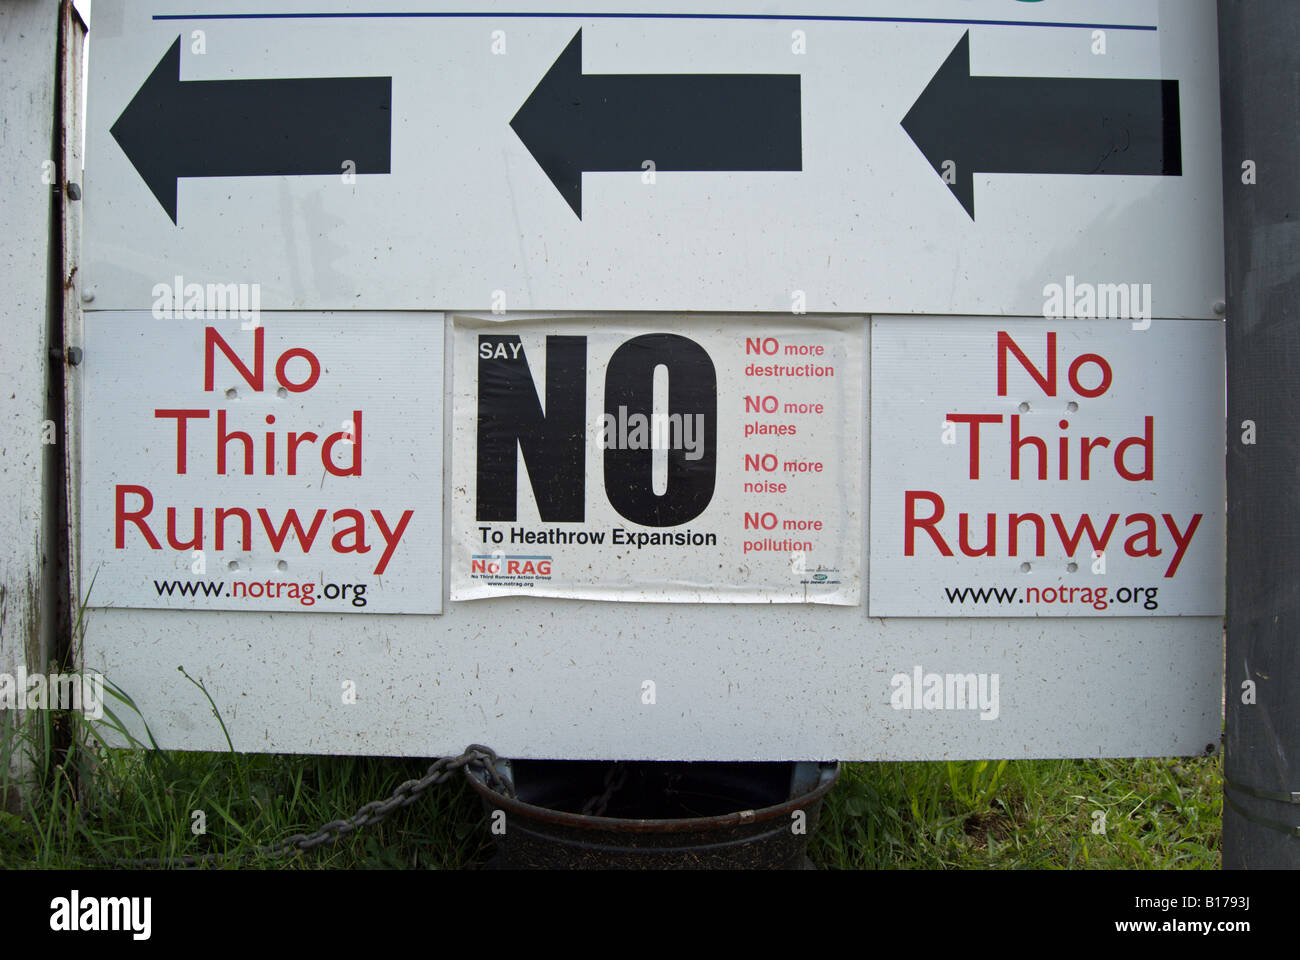 protest sign against a proposed third runway for london's heathrow airport - Stock Image